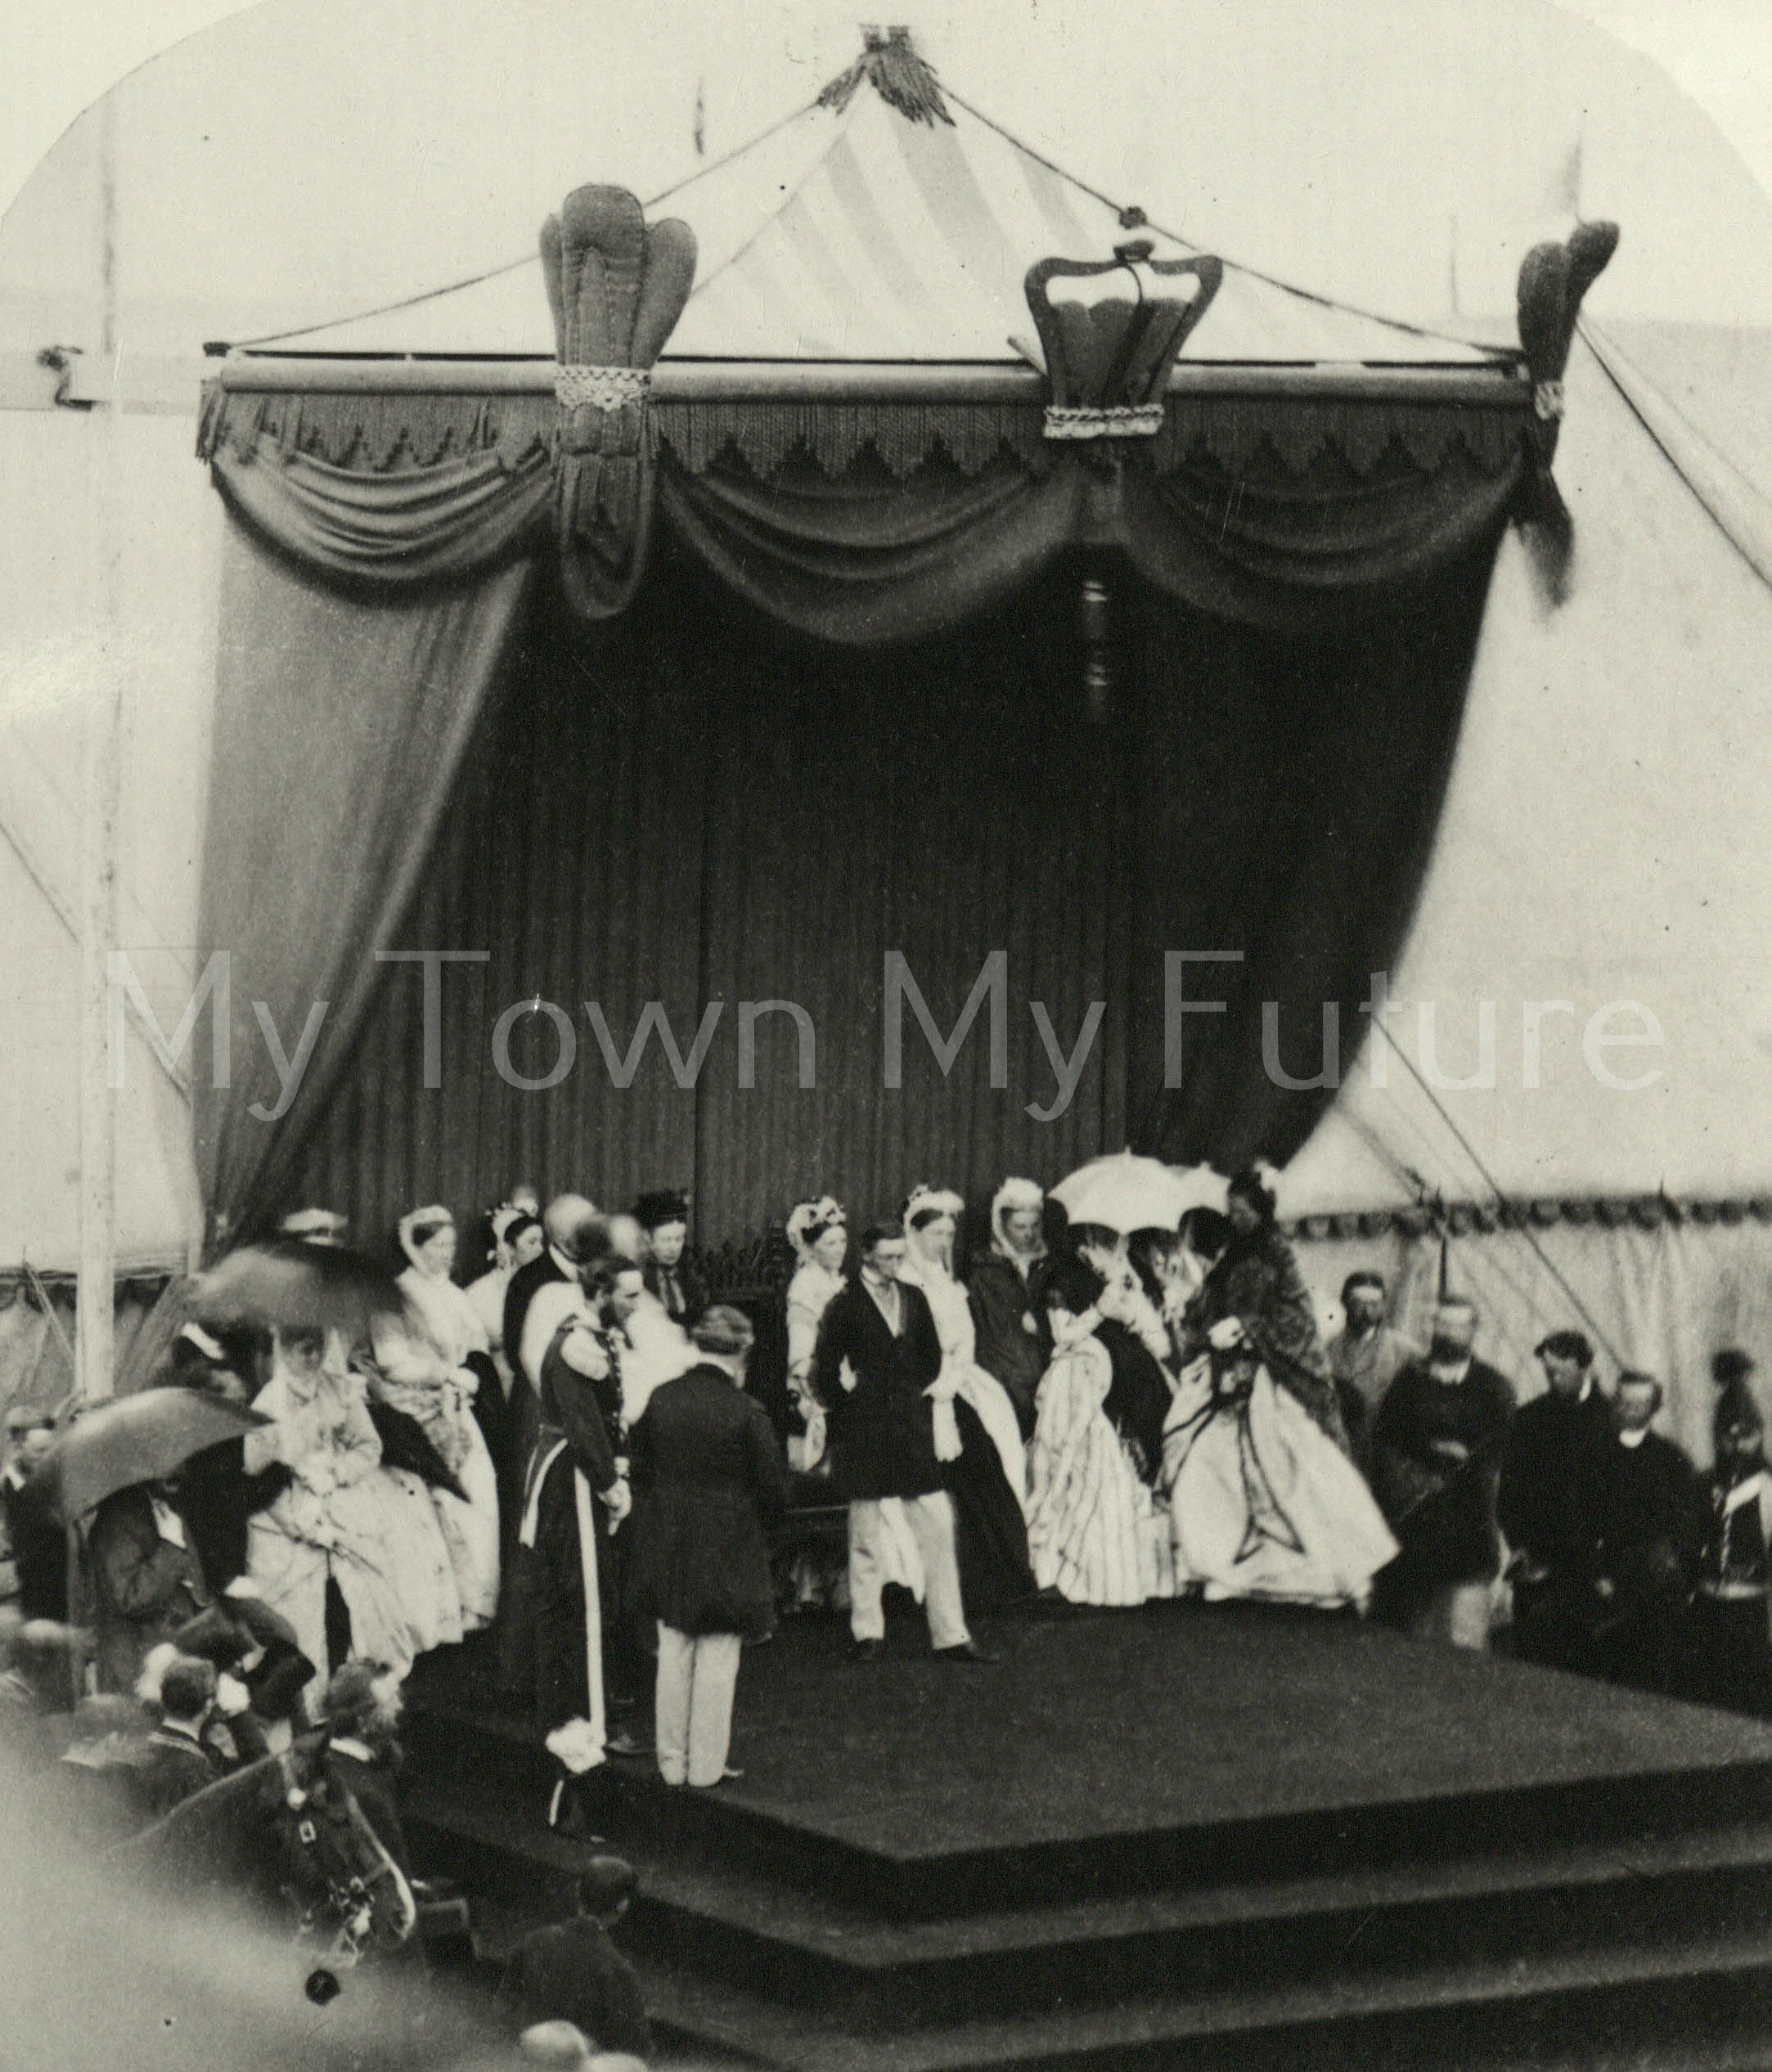 Albert Park - Opening of the Park by Prince Arthur of Connaught, 1868 - Dennis Wompra Photograher's - 86 Grange Road - Middlesbrough